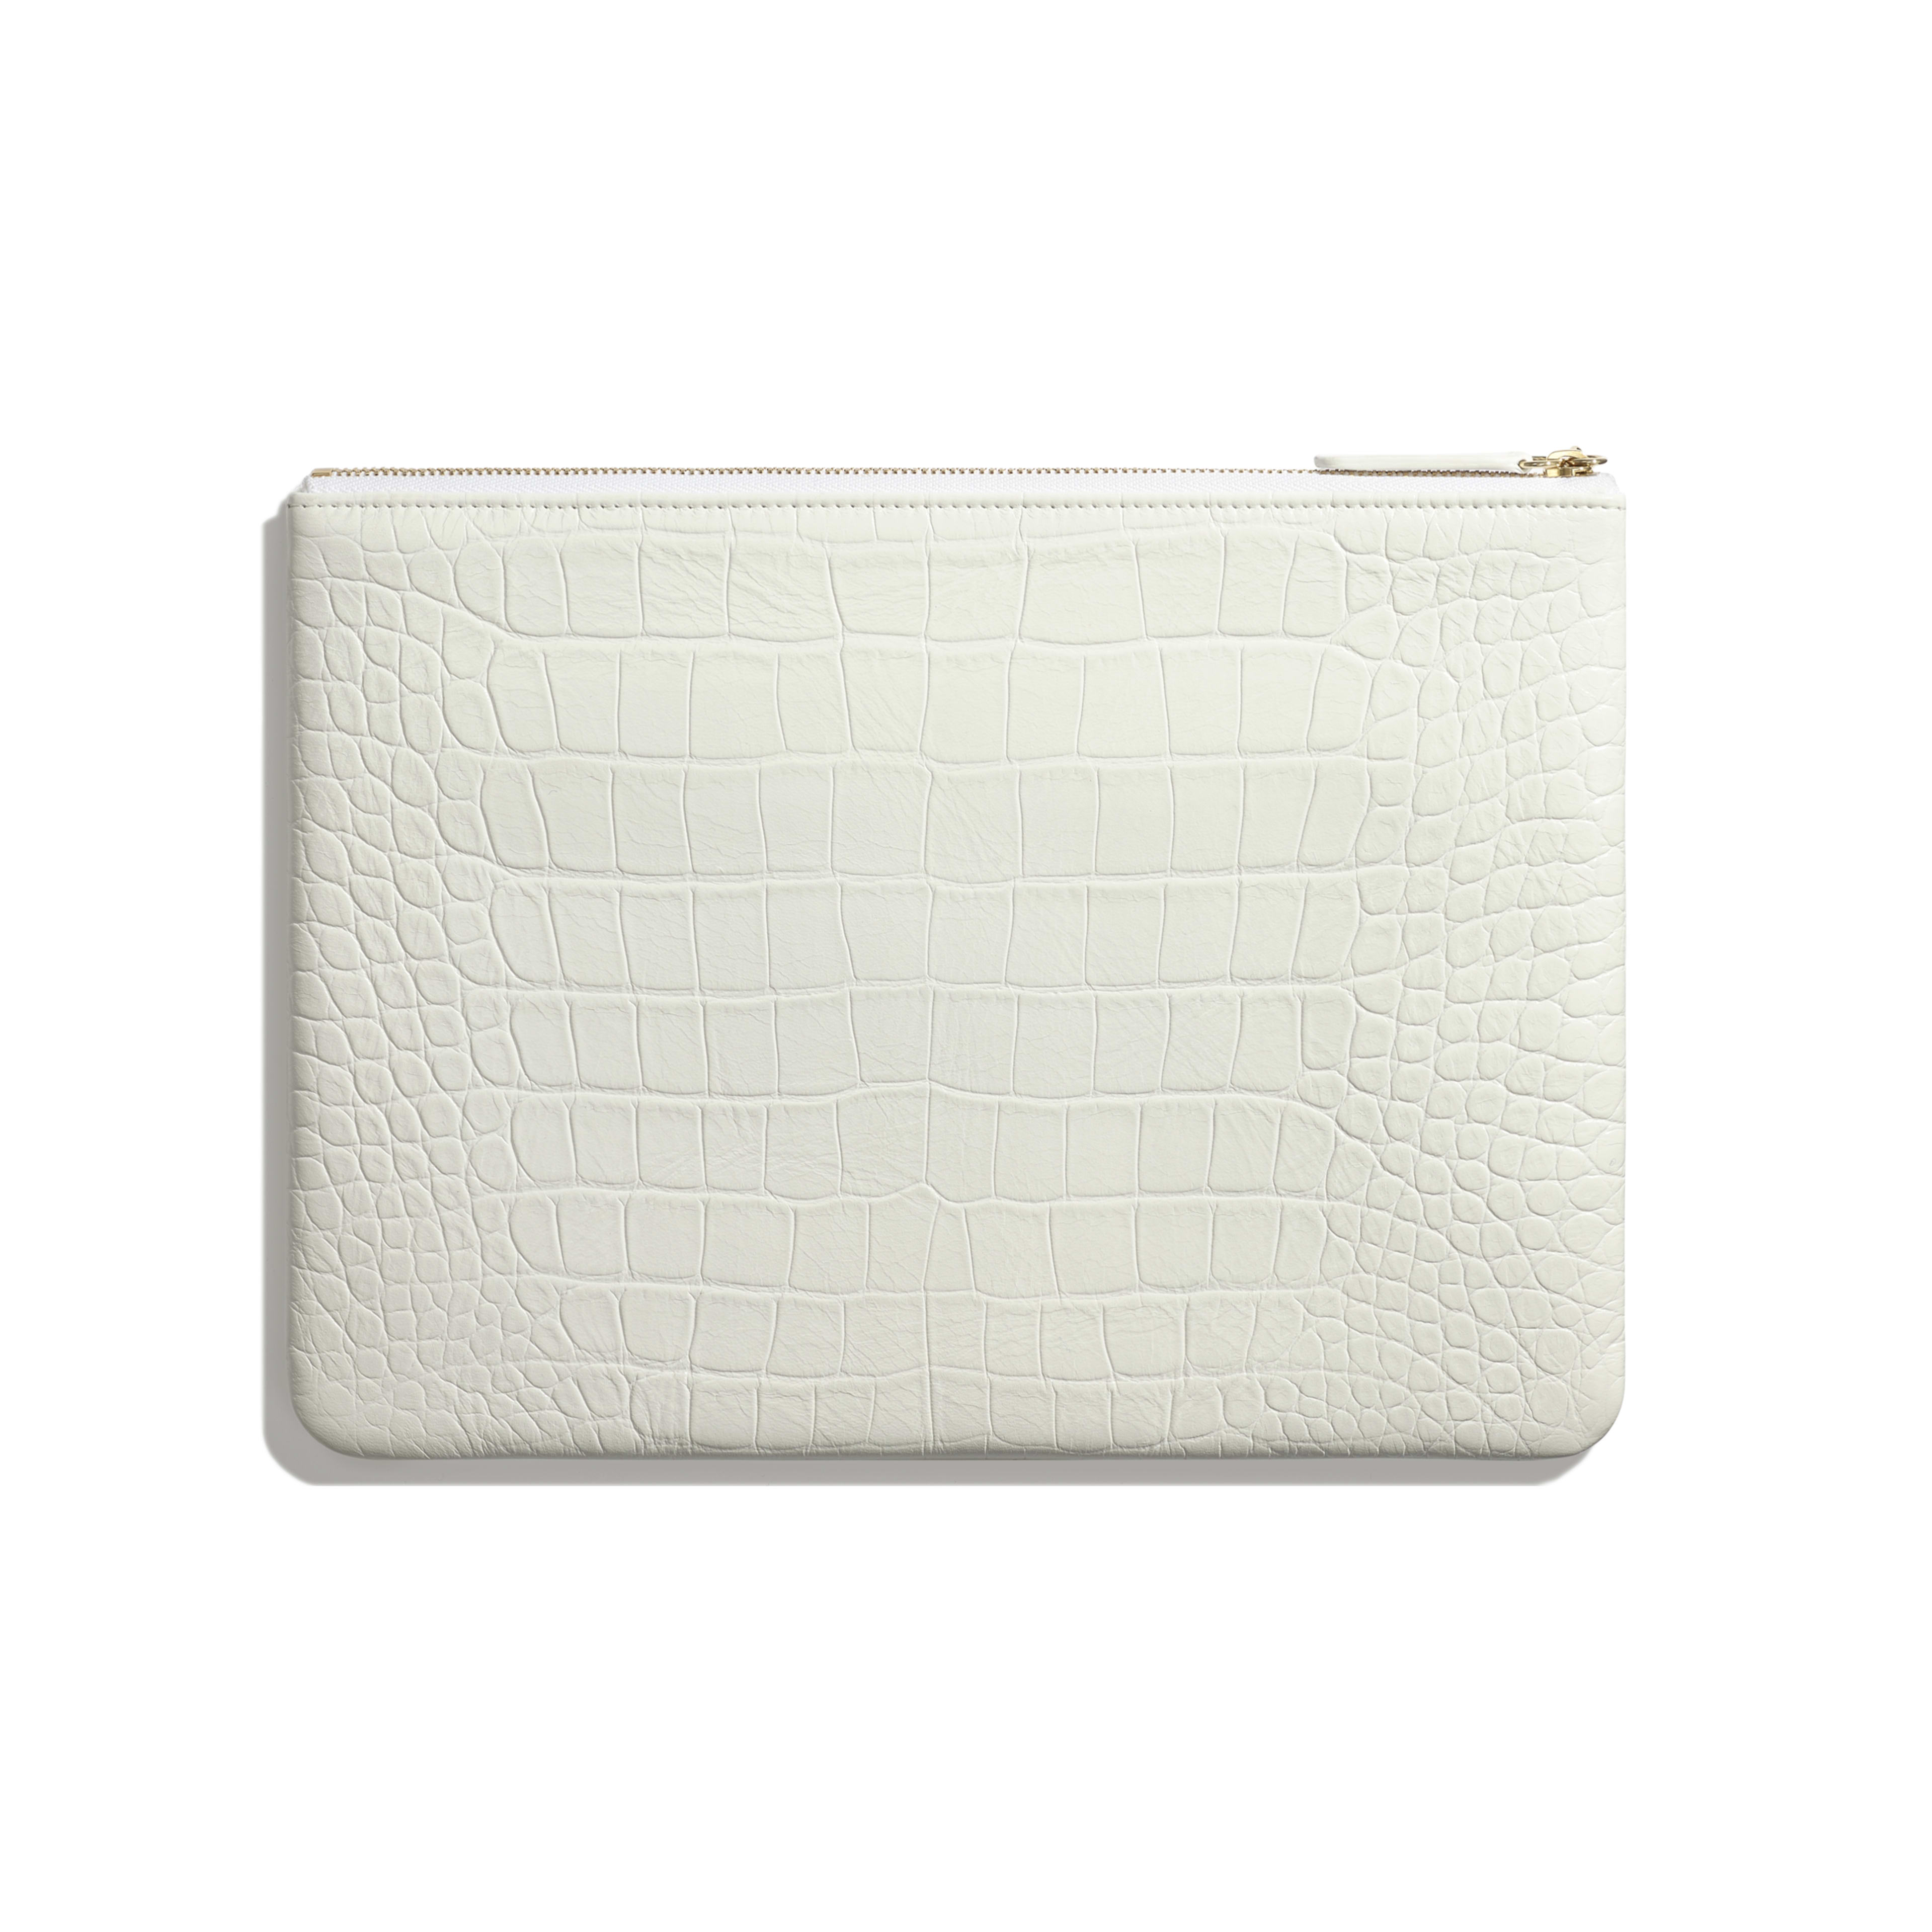 Pouch - White & Gold - Crocodile Embossed Calfskin & Gold-Tone Metal - Alternative view - see full sized version